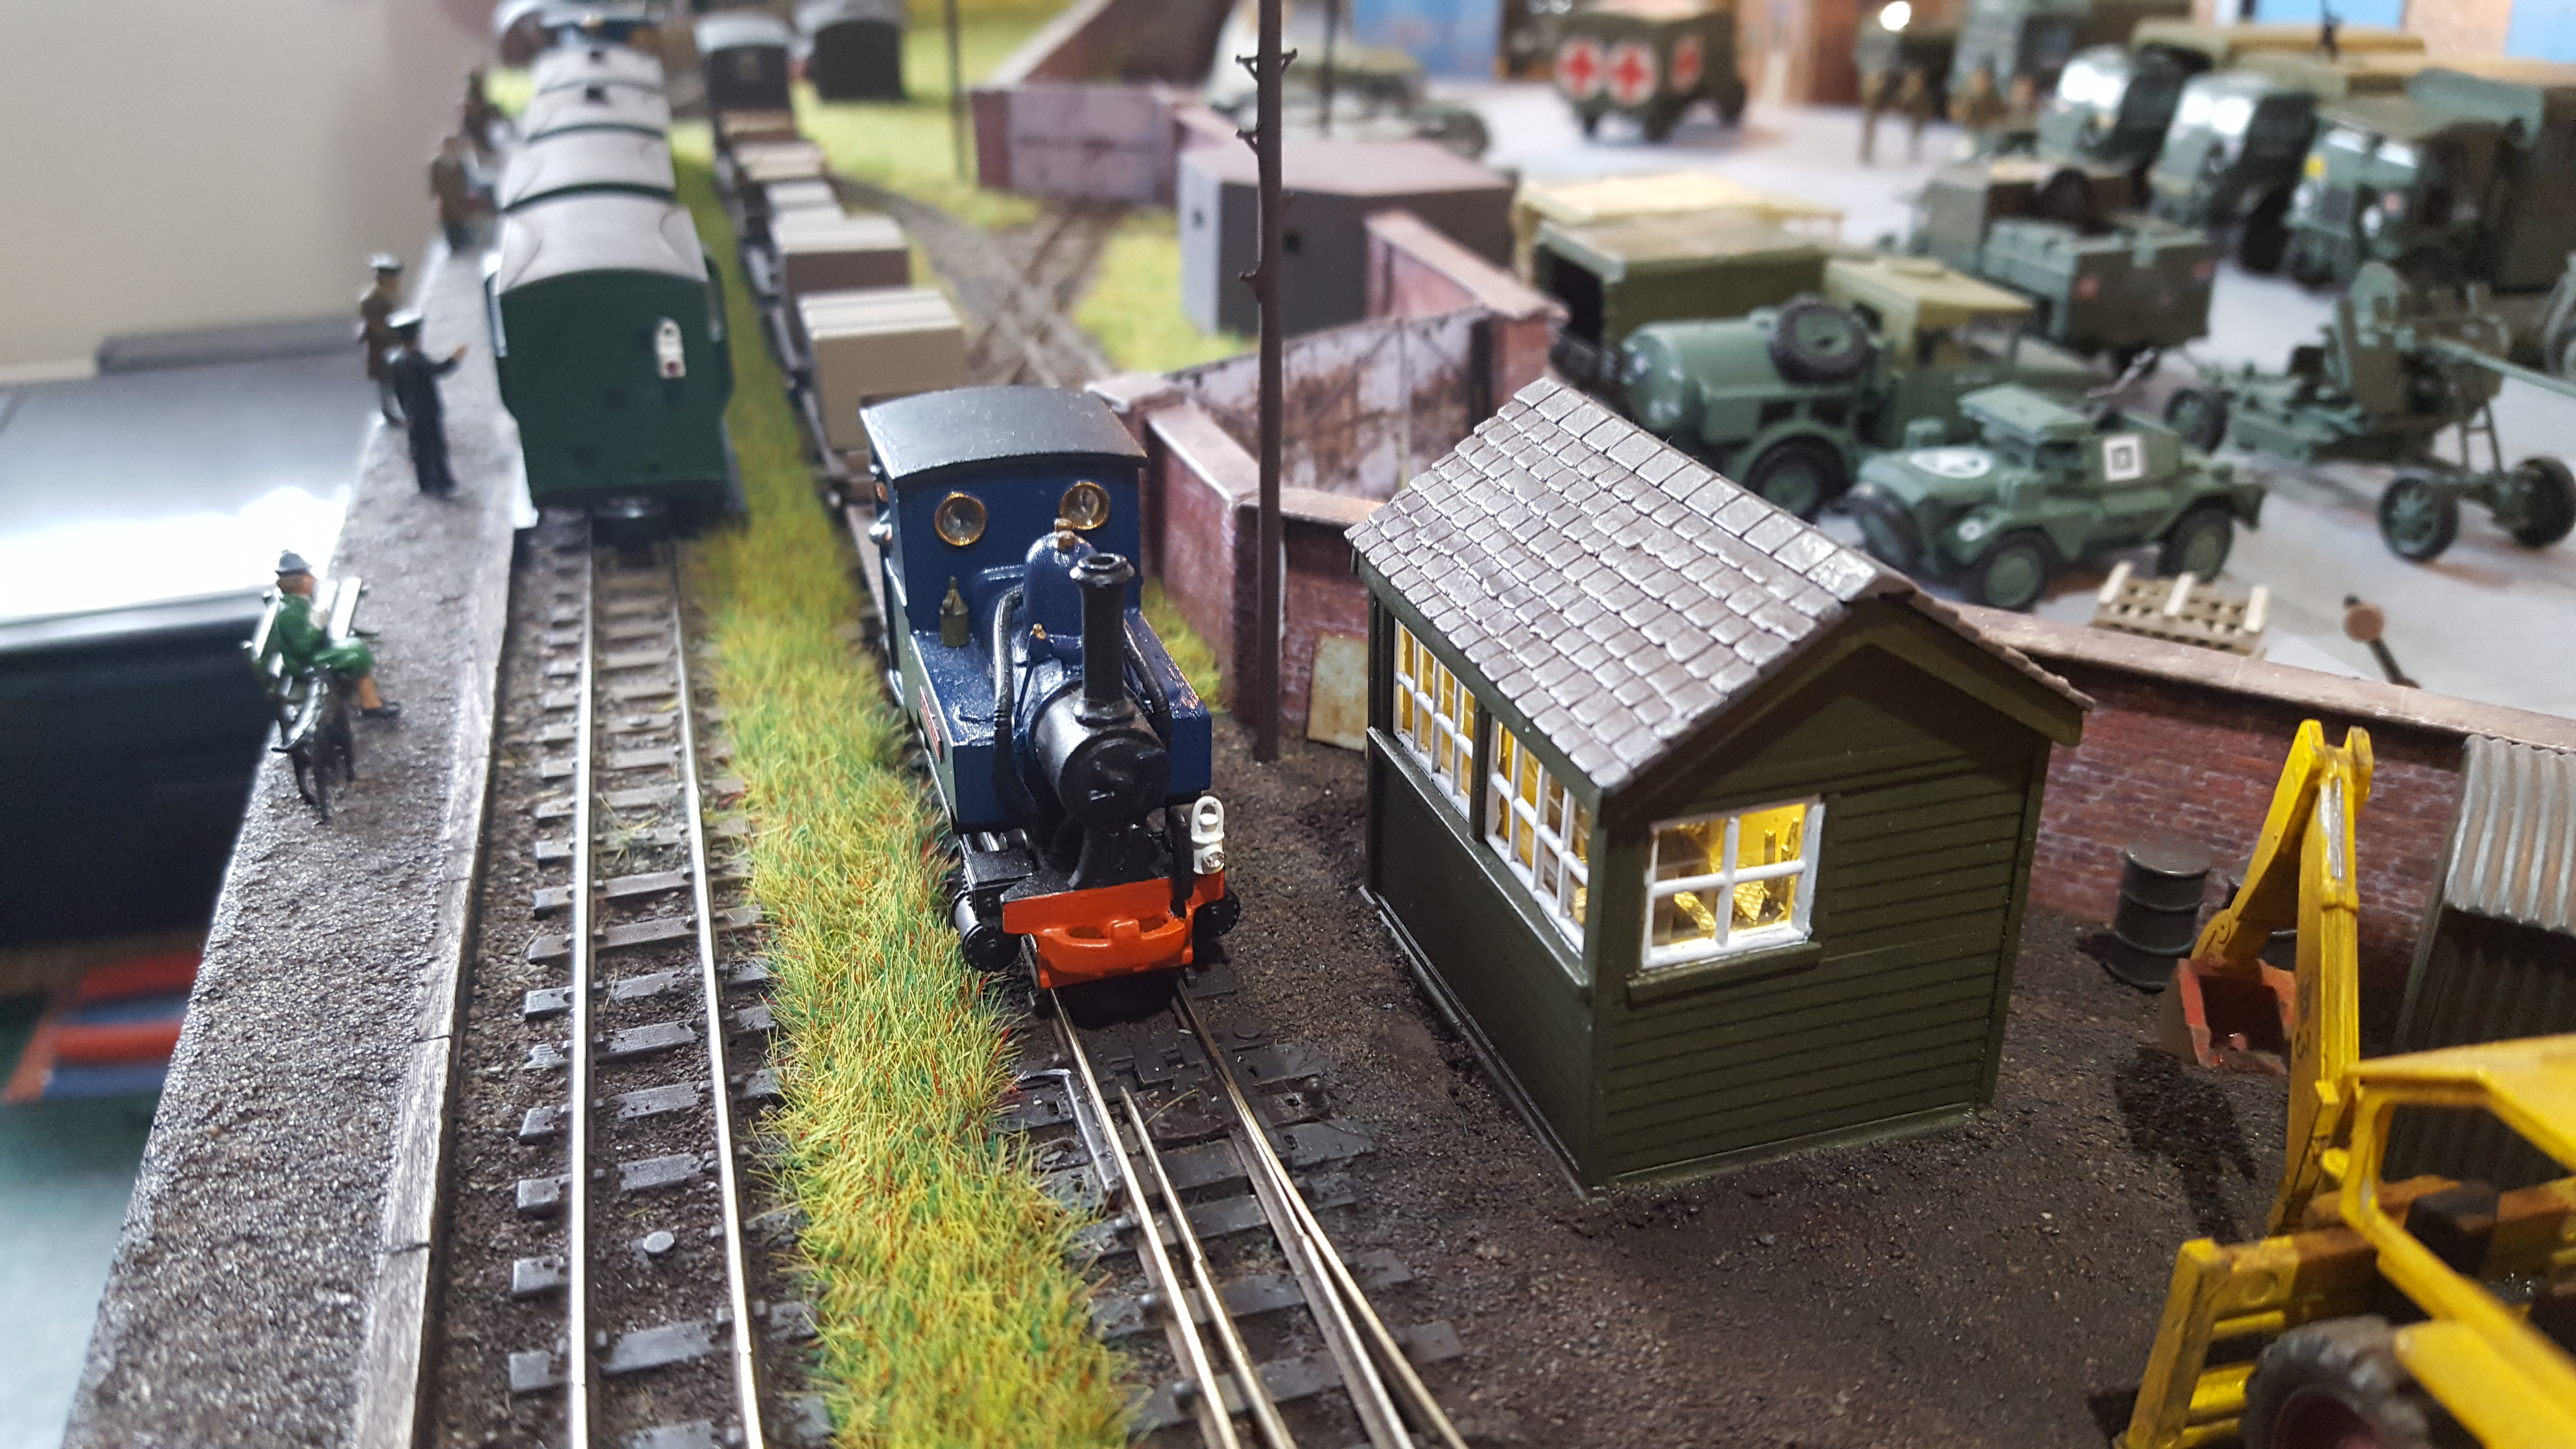 Ludlow Layout